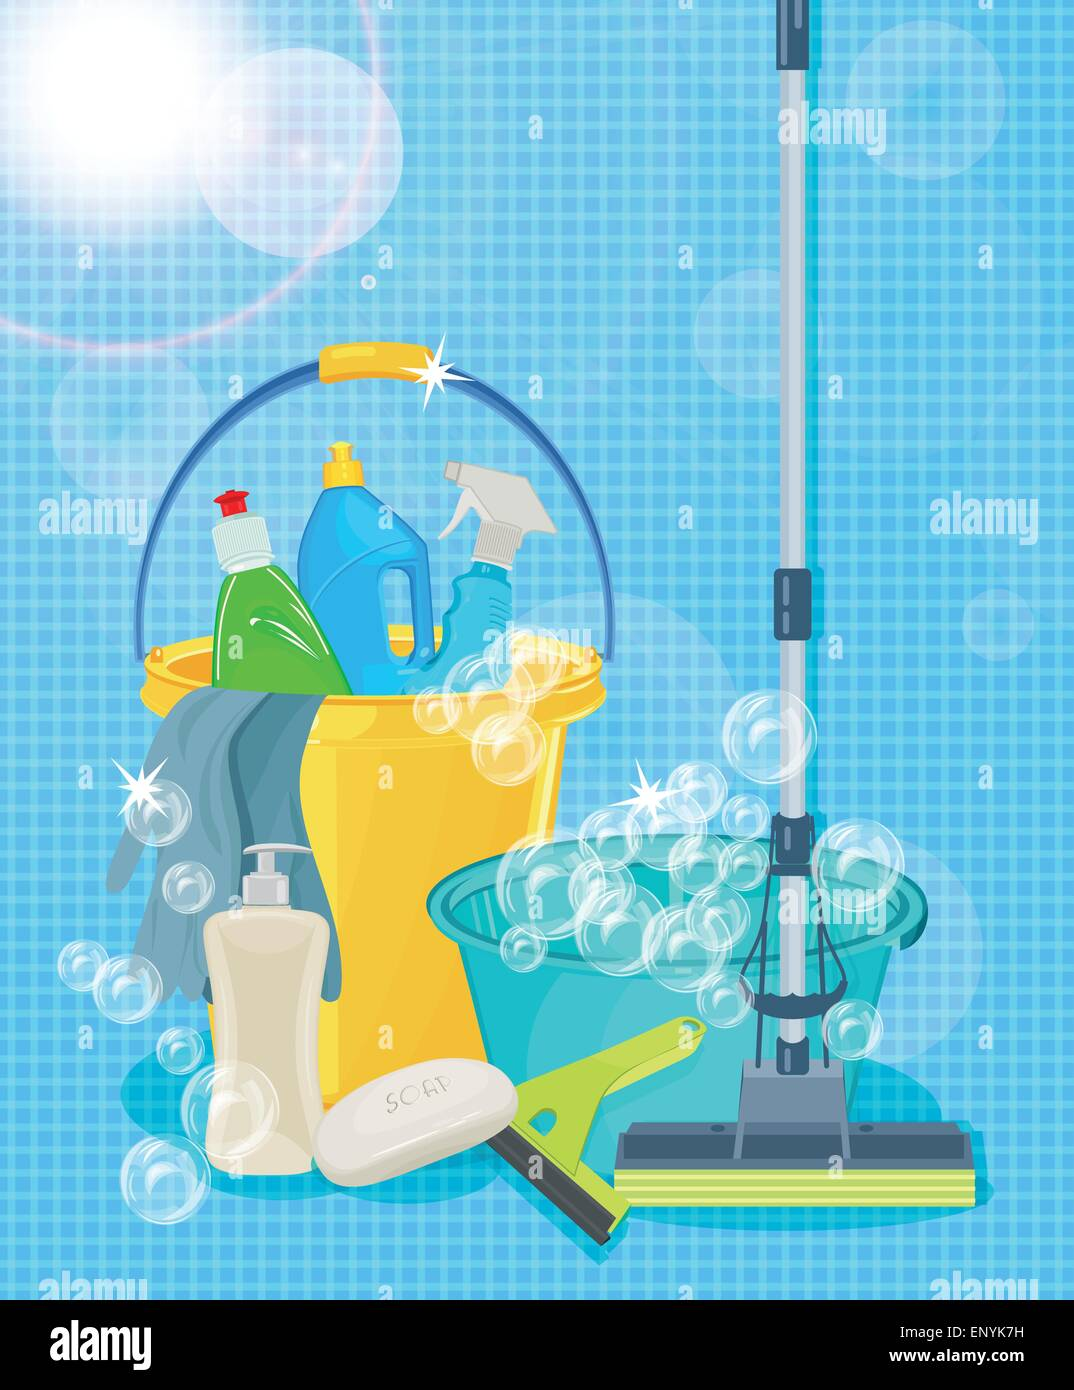 Poster design kit - Poster Design For Cleaning Service And Cleaning Supplies Cleaning Kit Icons